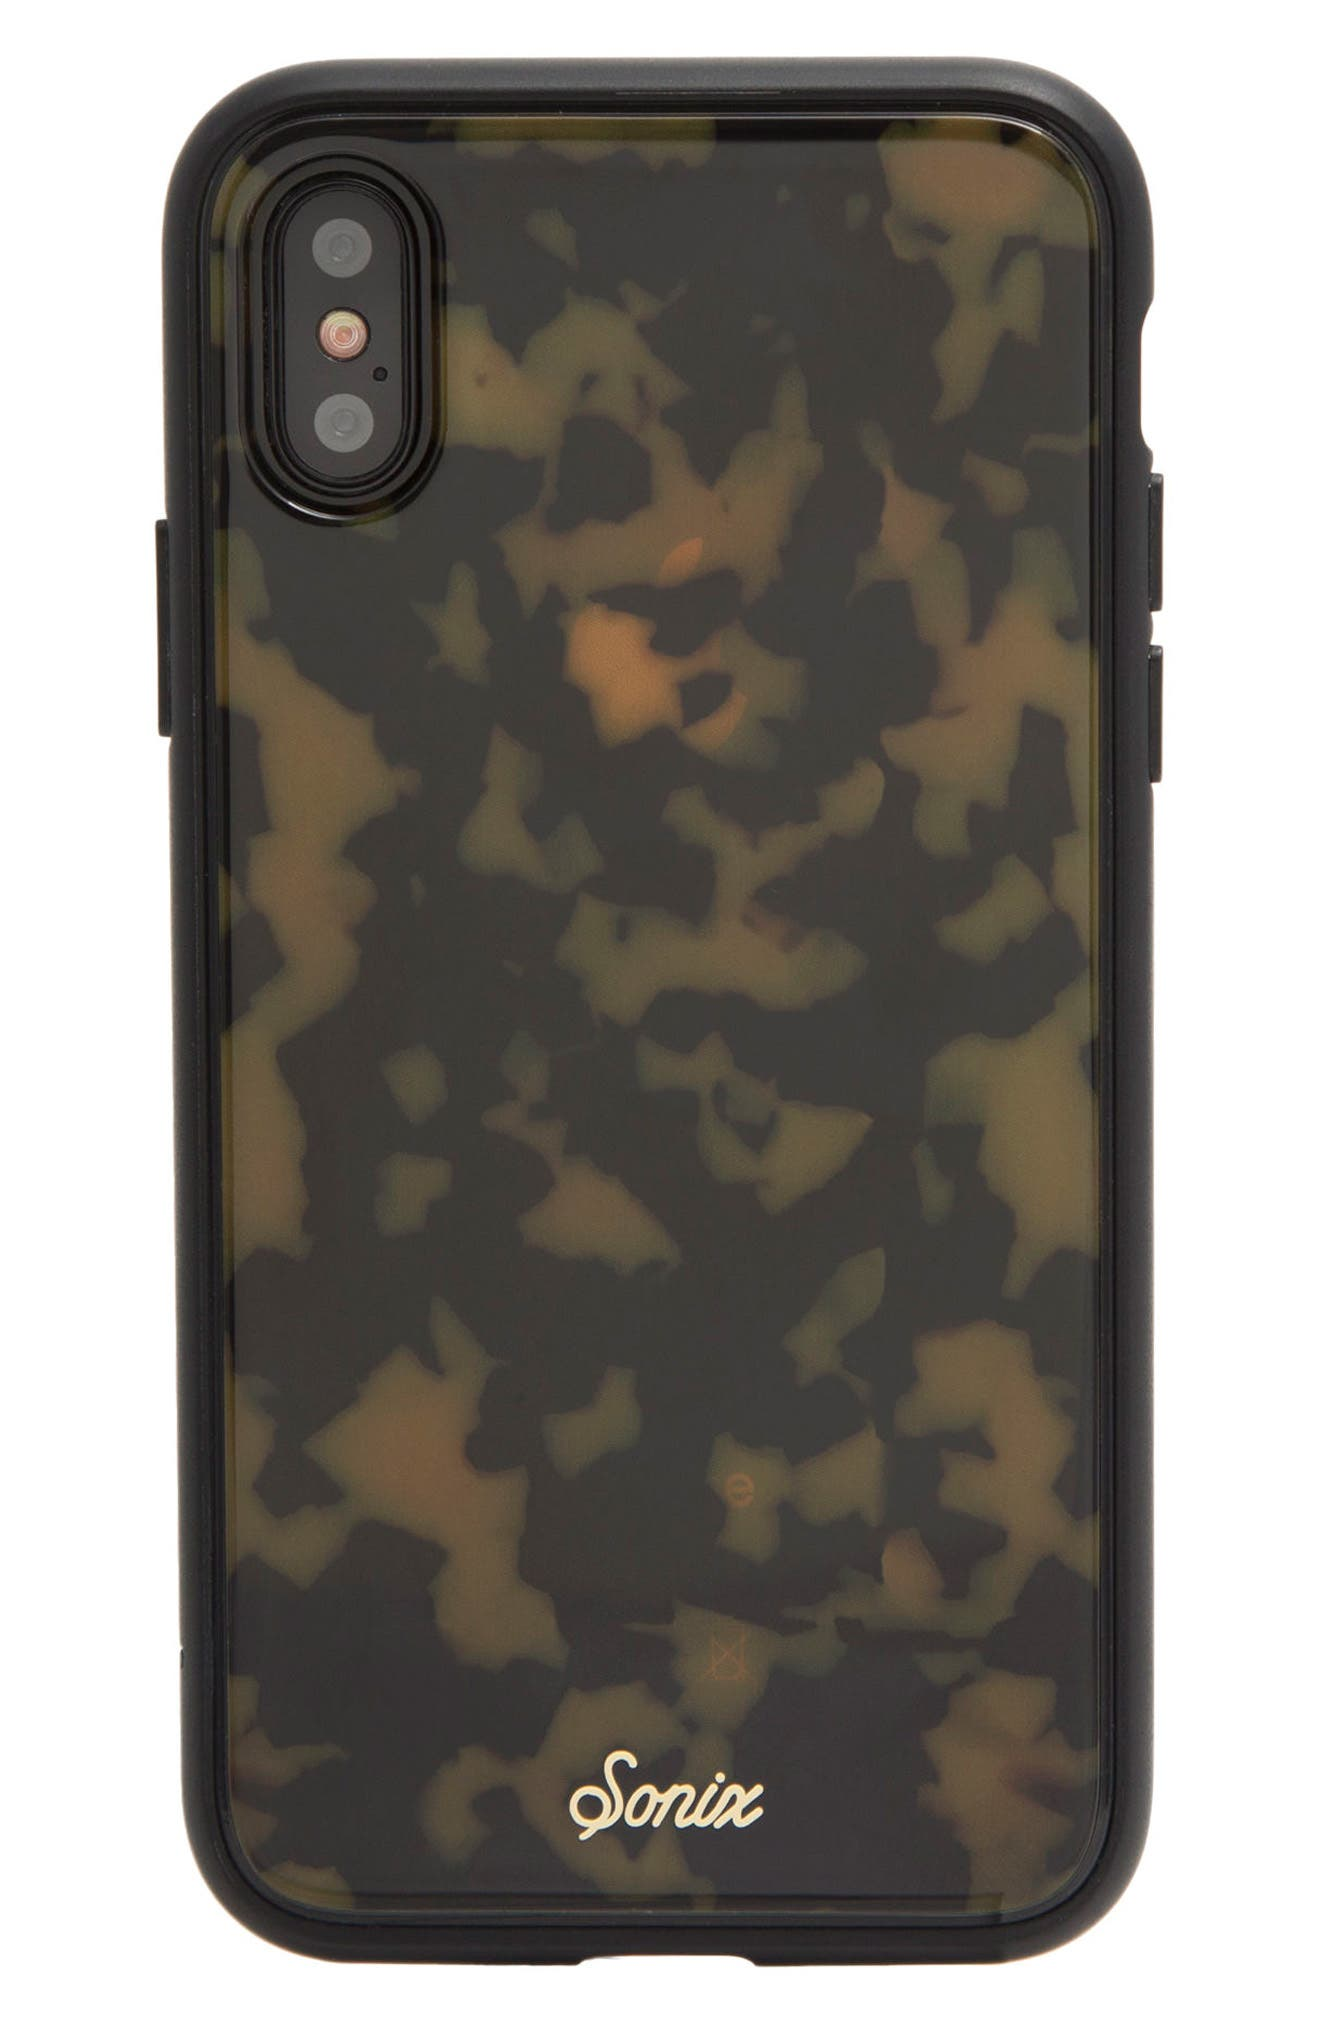 Tortoise iPhone 6/6s/7/8 & 6/6s/7/8 Plus Case,                             Alternate thumbnail 3, color,                             200